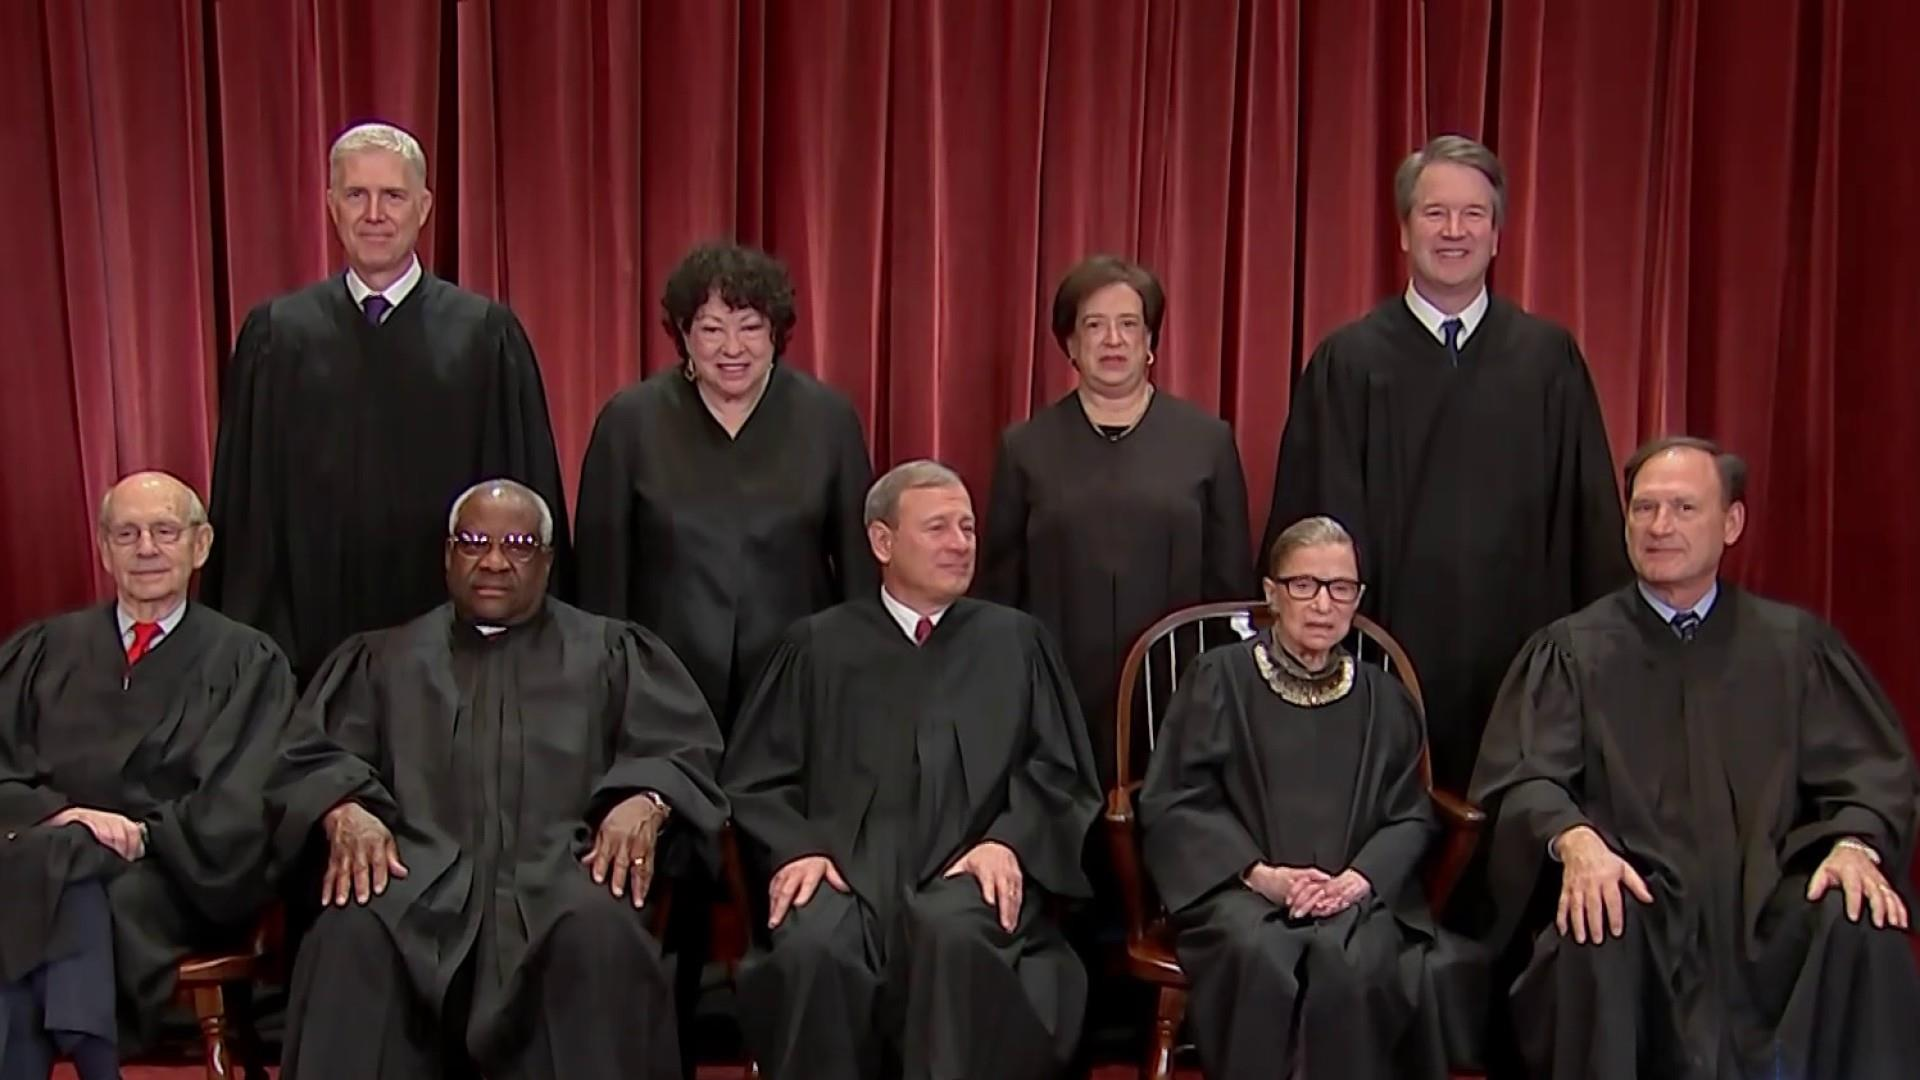 Supreme Court to take up Louisiana law limiting access of abortion doctors